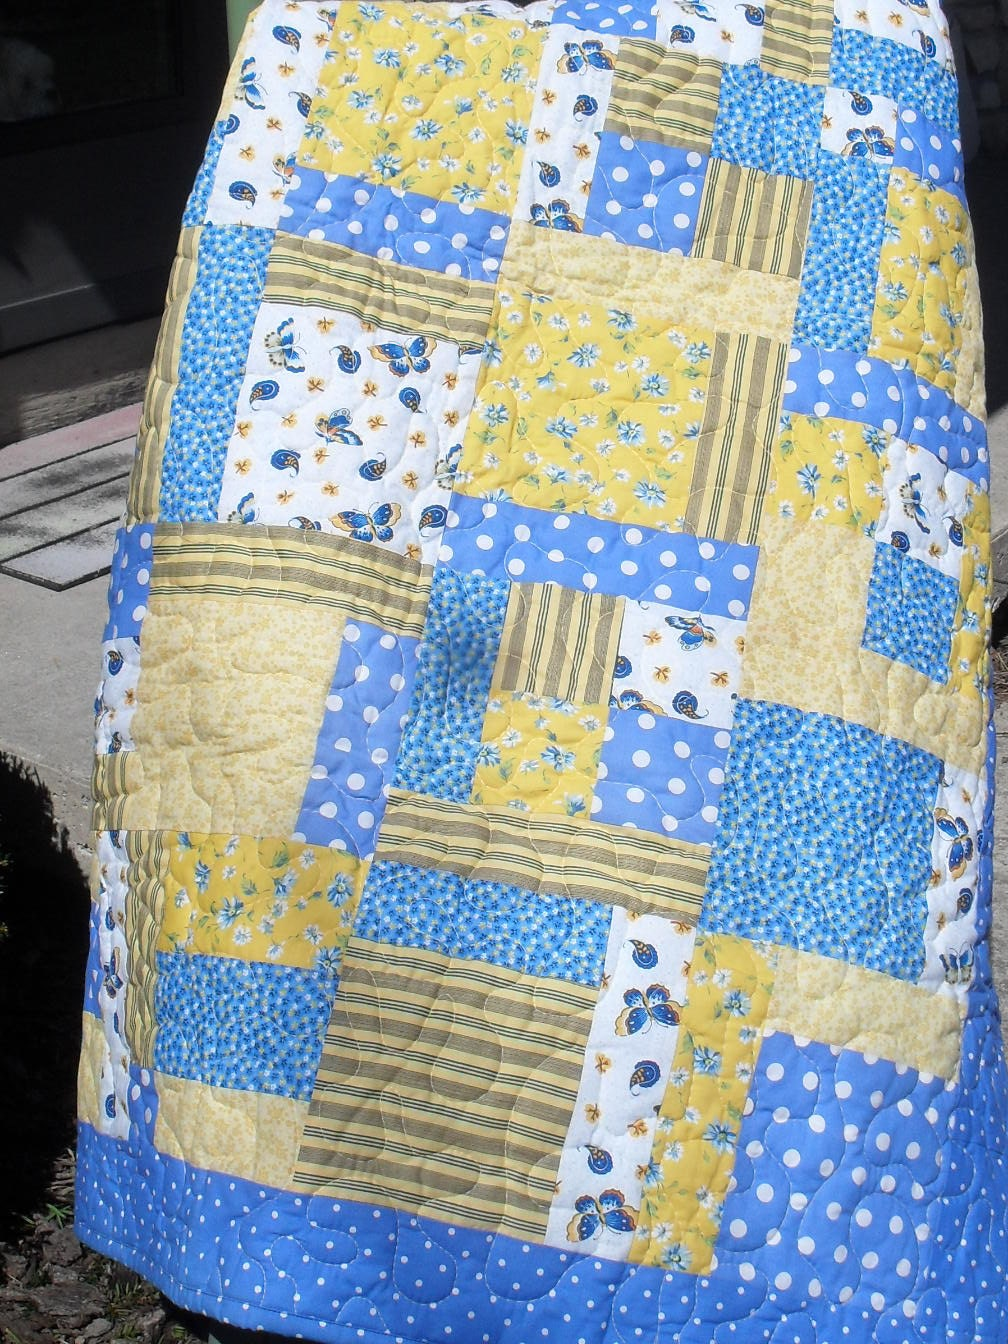 Handmade quilt for sale homemade quilts gift for her lap for Quilts for sale